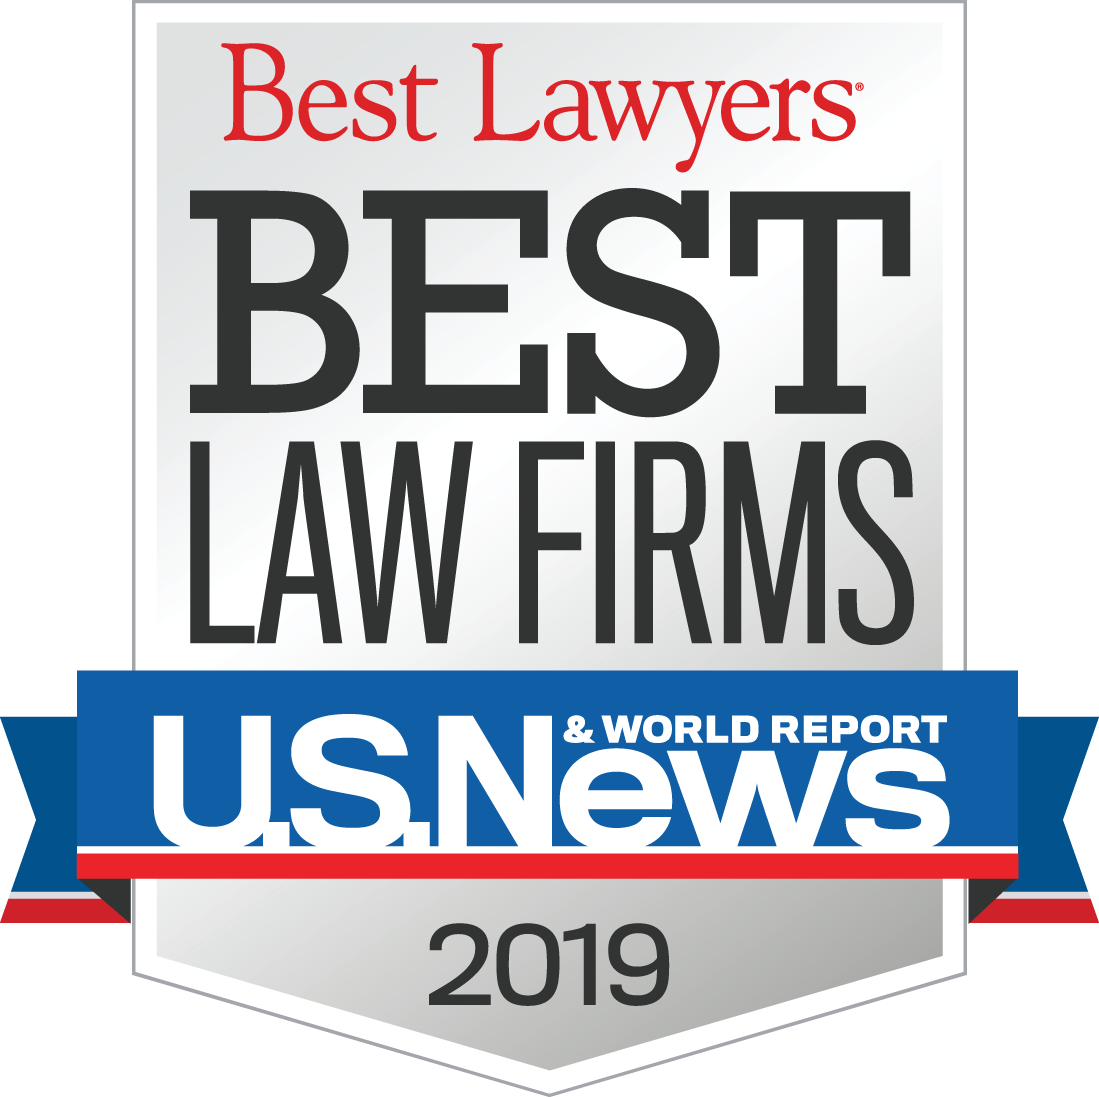 Selected as Best Lawyers Best Law Firms 2015-2019